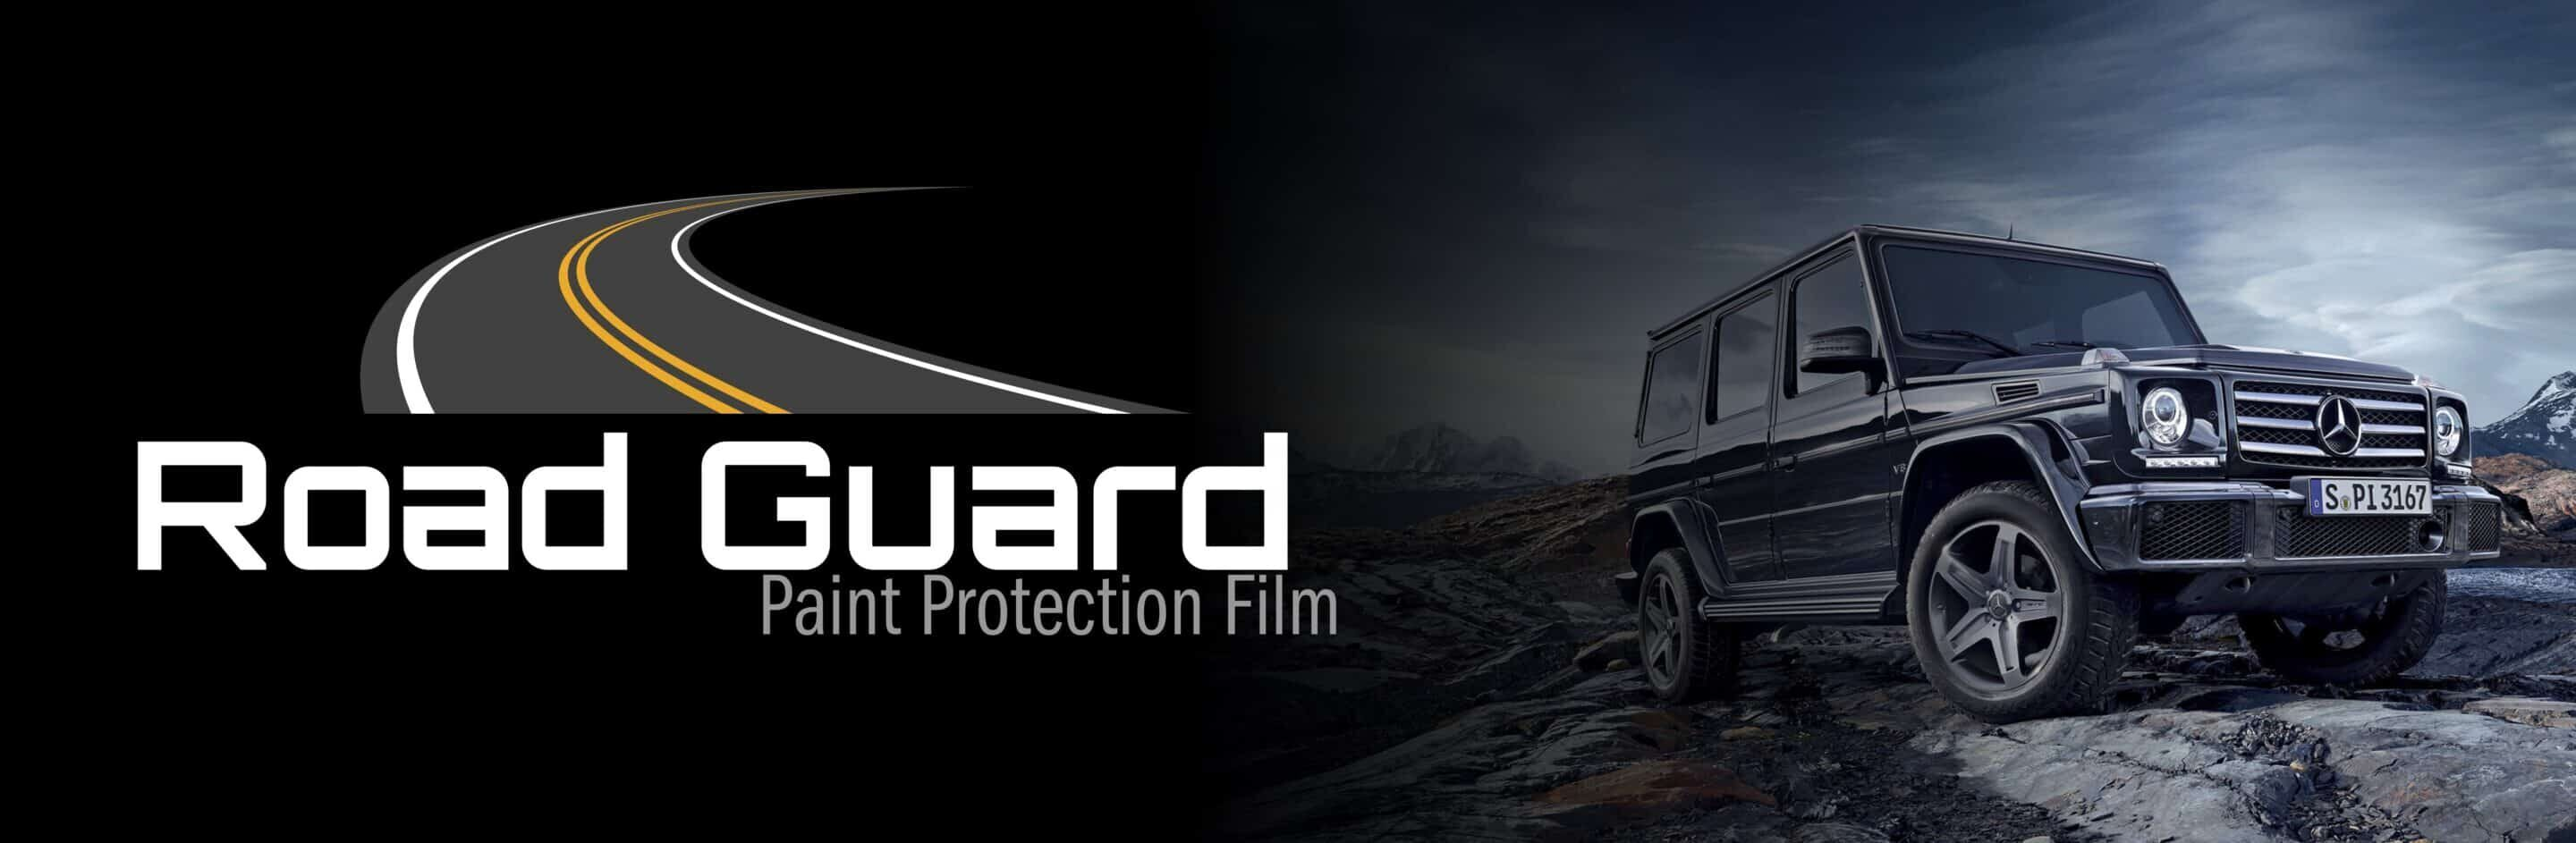 2019 Road Guard Banners (dragged) 2